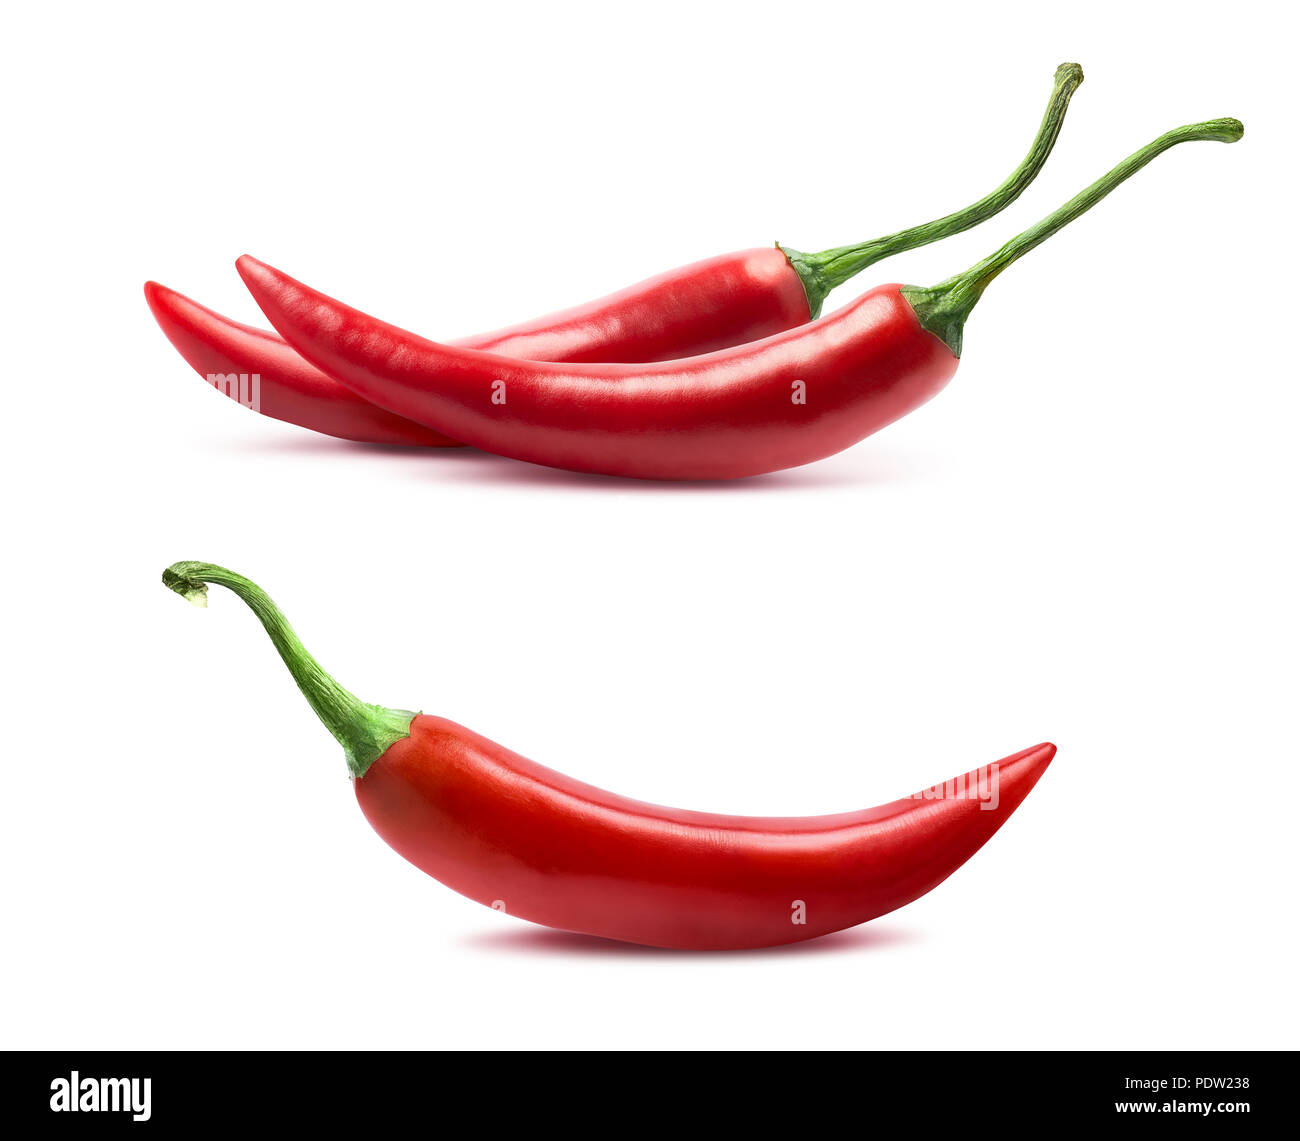 Single and double chili peppers set isolated on white background as package design element - Stock Image